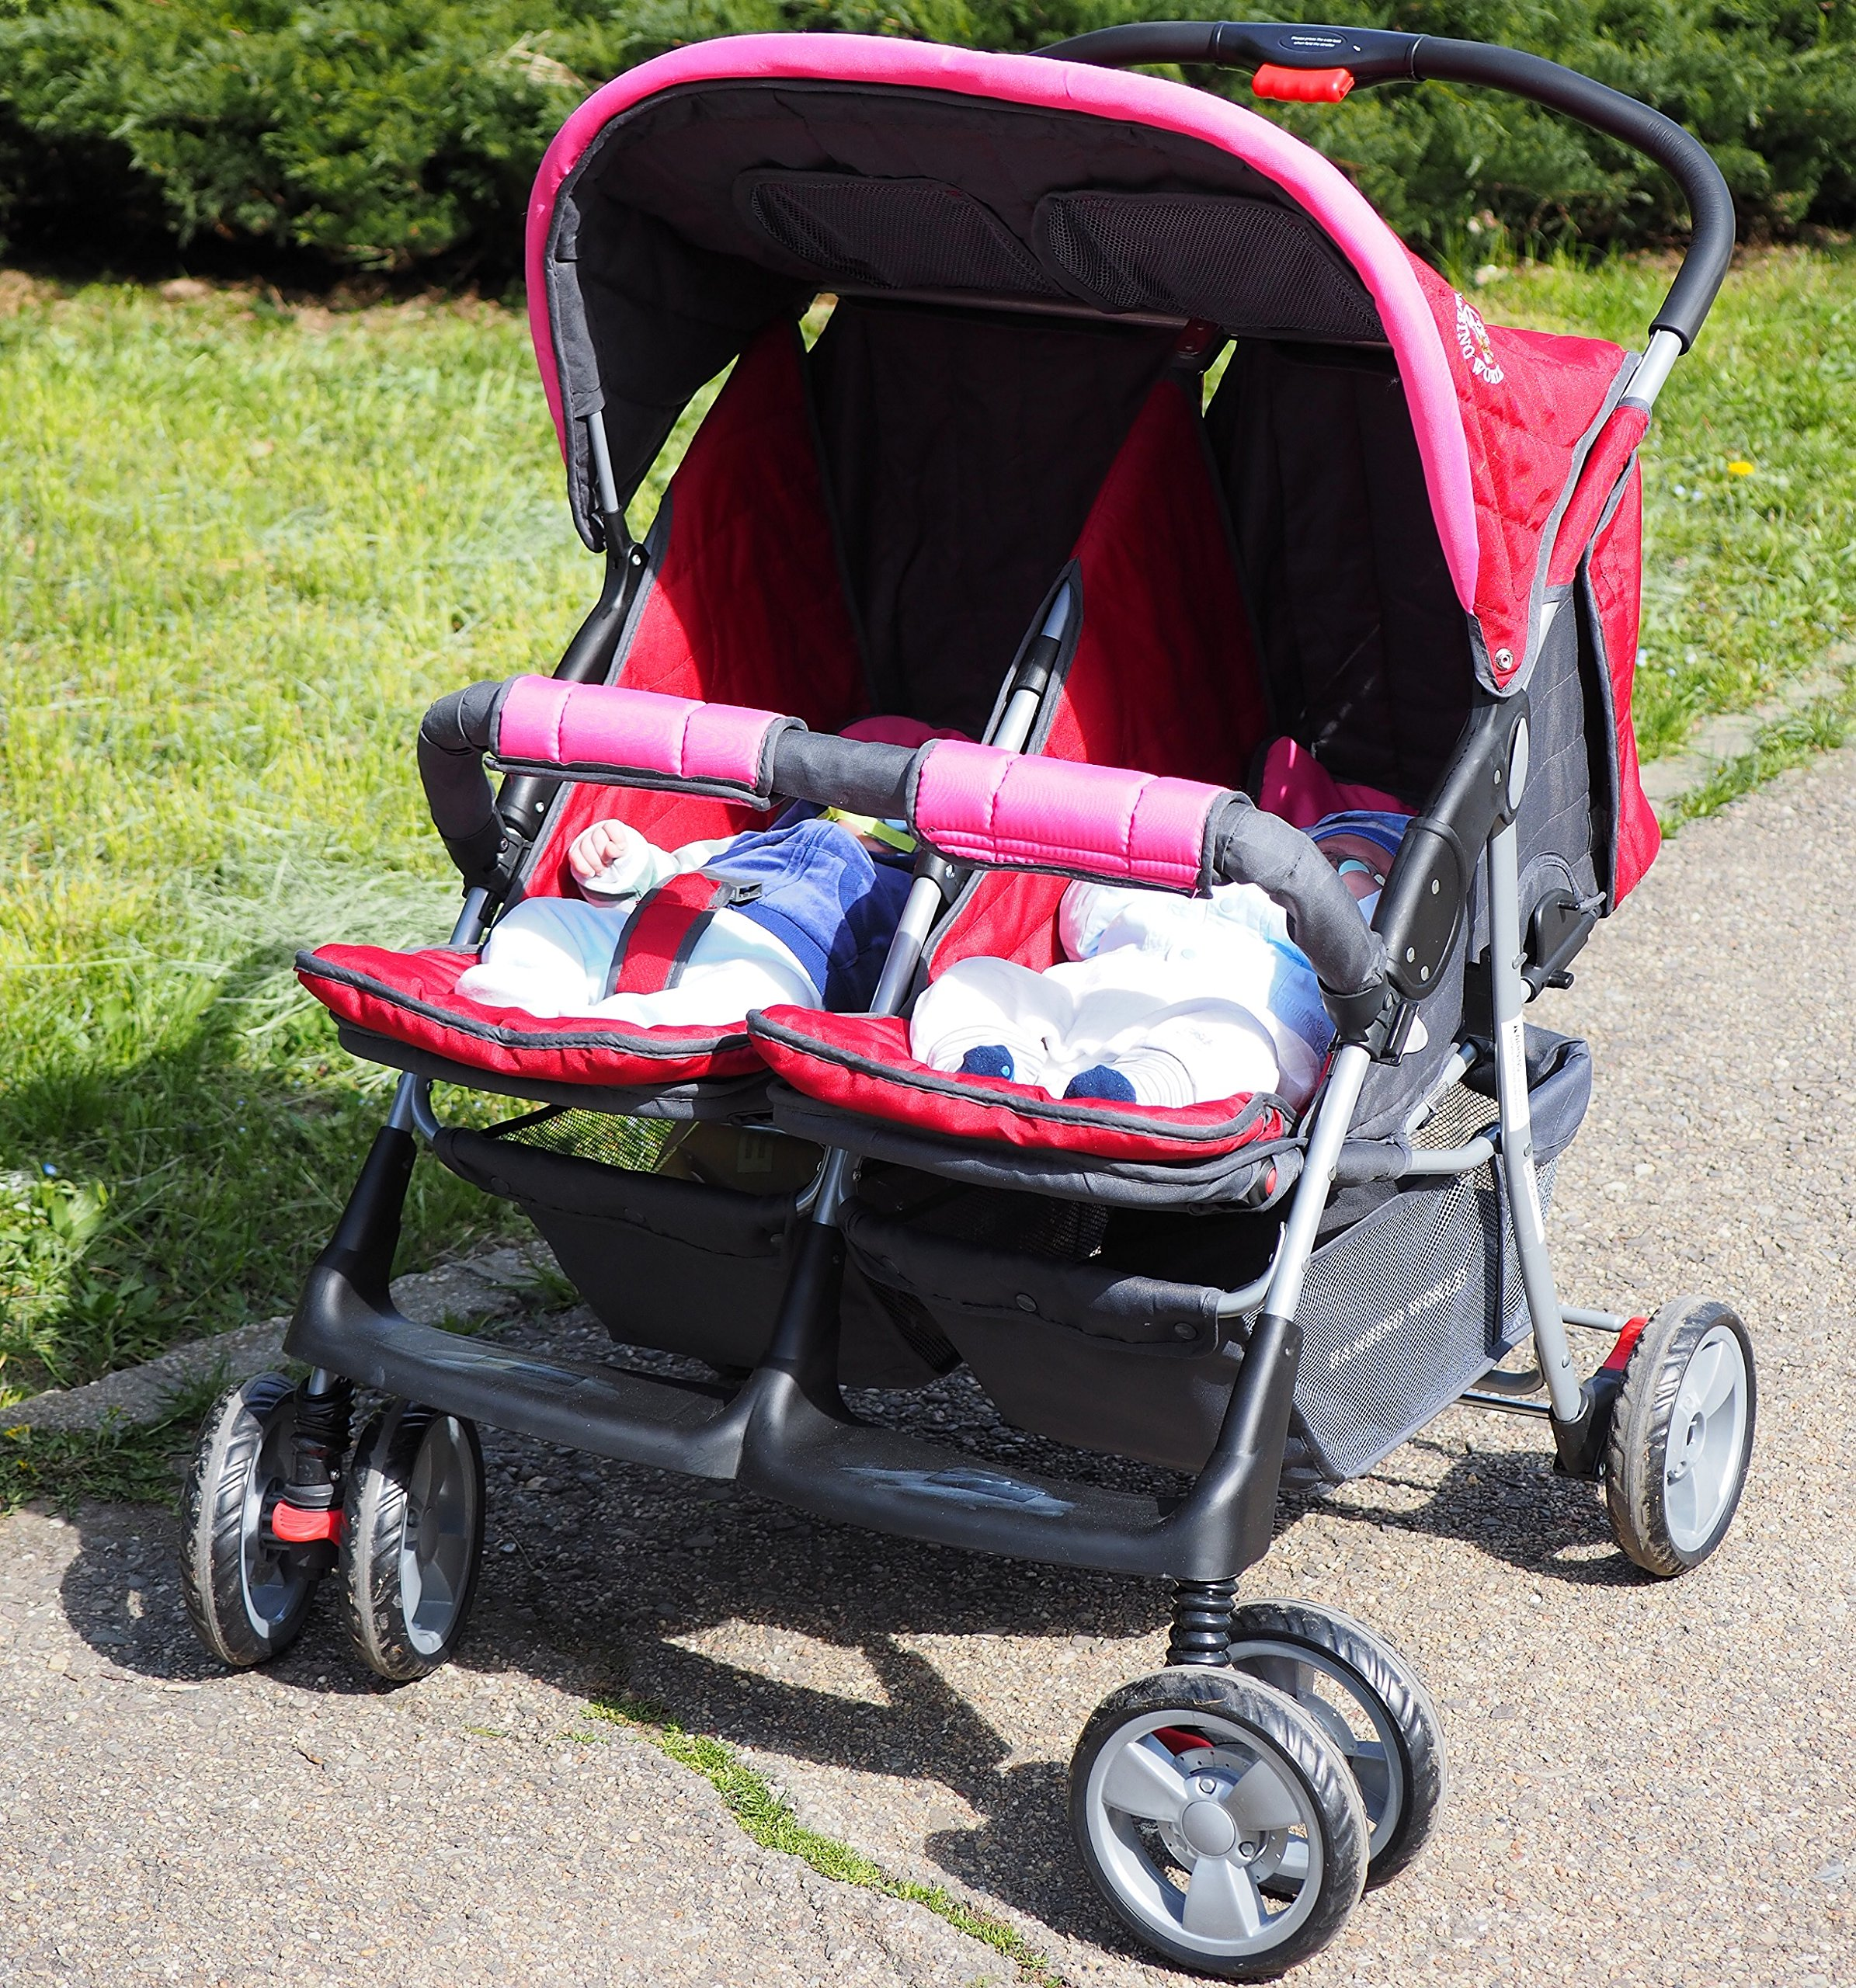 Deluxe Tandem - Twin Pram rose - BambinoWorld Bambino World Ideal pram for parents of twins or children with small difference in age.Thus you remain mobile also with 2 babies or infants. Main features: Very compact and light ; Adjustable backrest ; Foot rests adjustable ; Easy folding . 100% safety for your child : 5-point safety harness ; Brake on rear wheels ; Lockable swivel front wheels ; Complies with strict European norms . 8